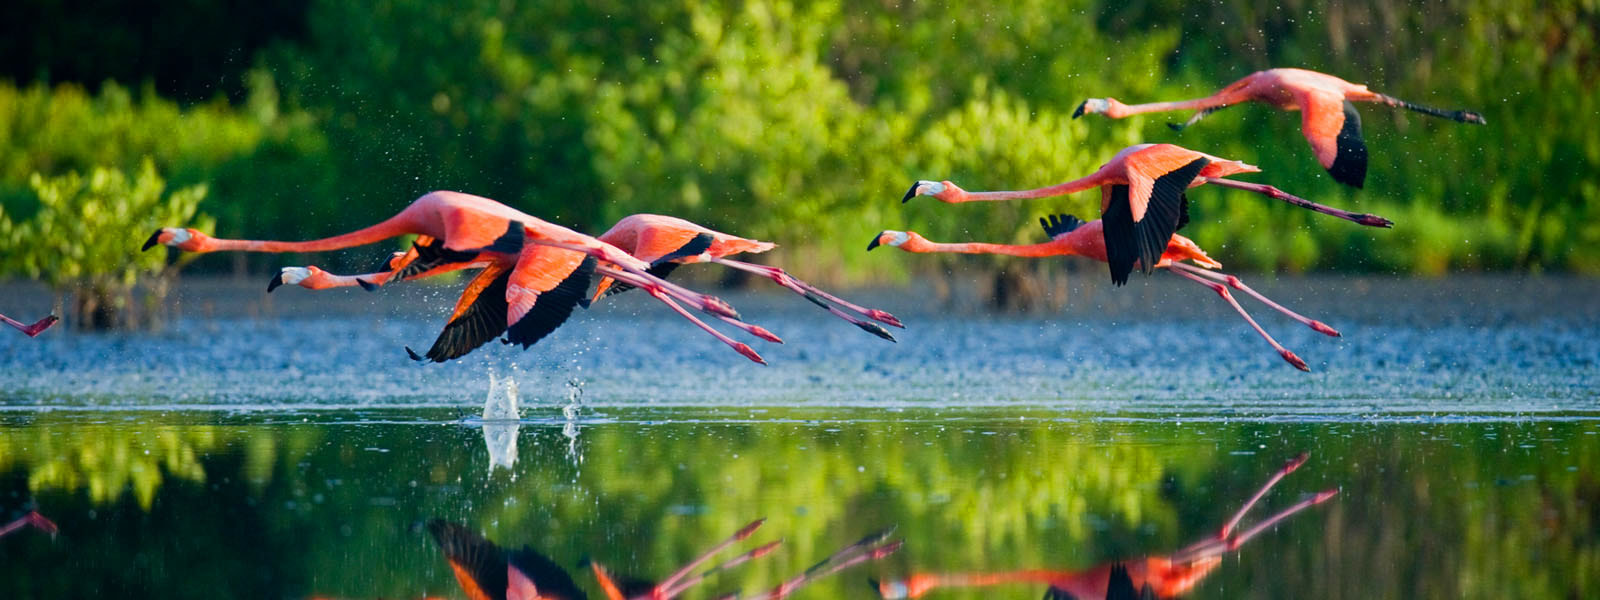 Flamingos in Rio Lagartos, Mexiko